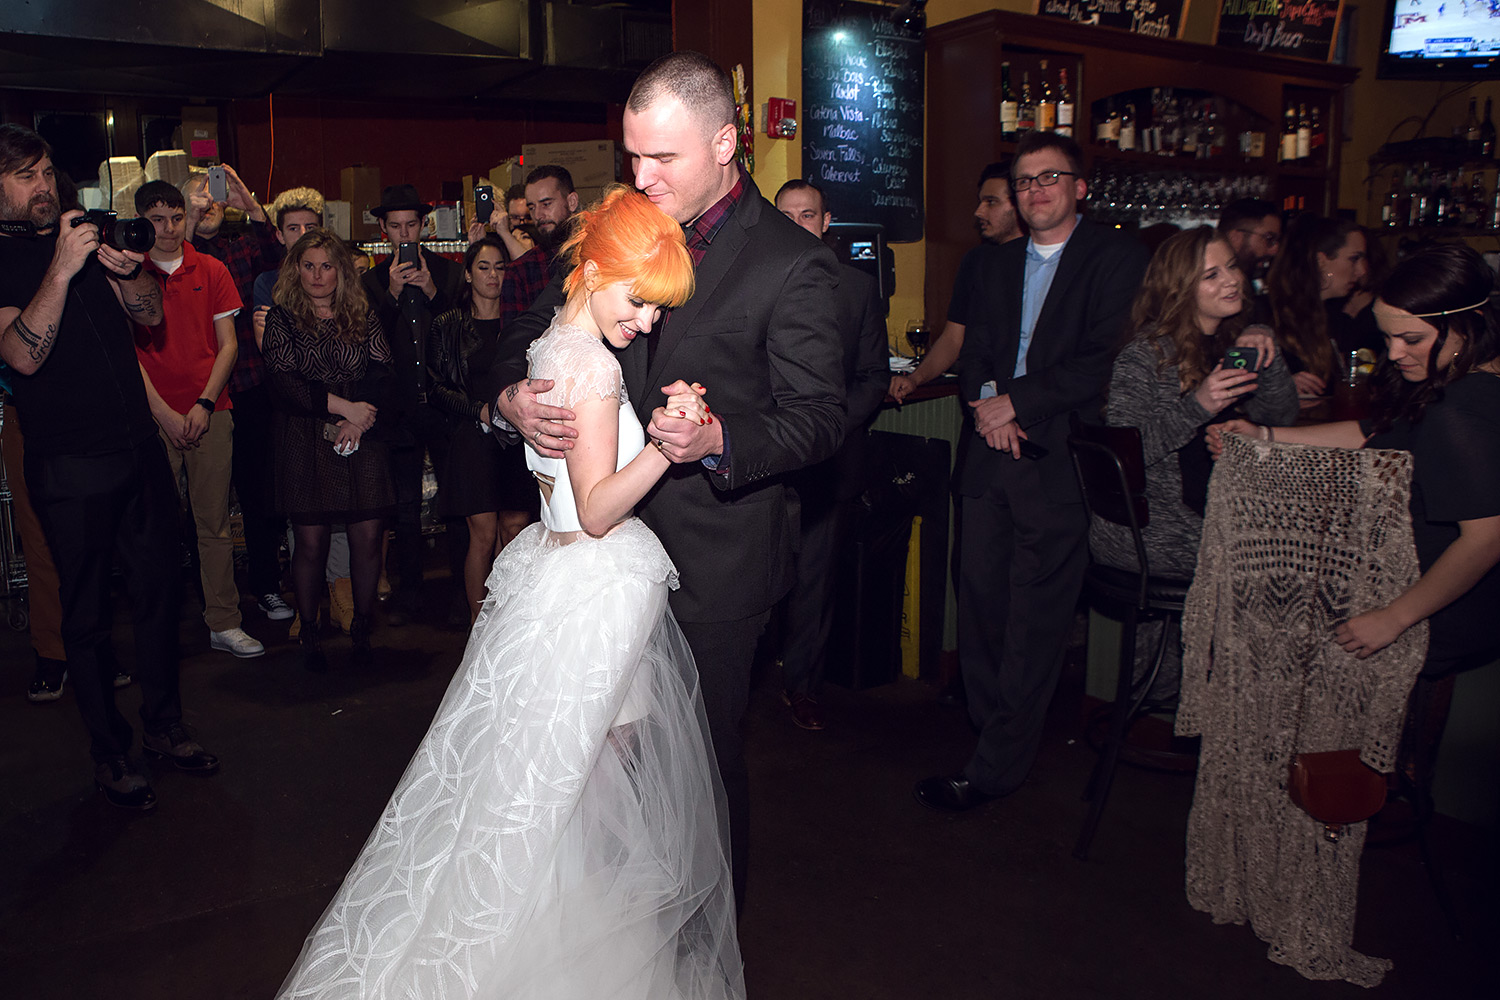 Hayley Williams and Chad Gilbert's first dance